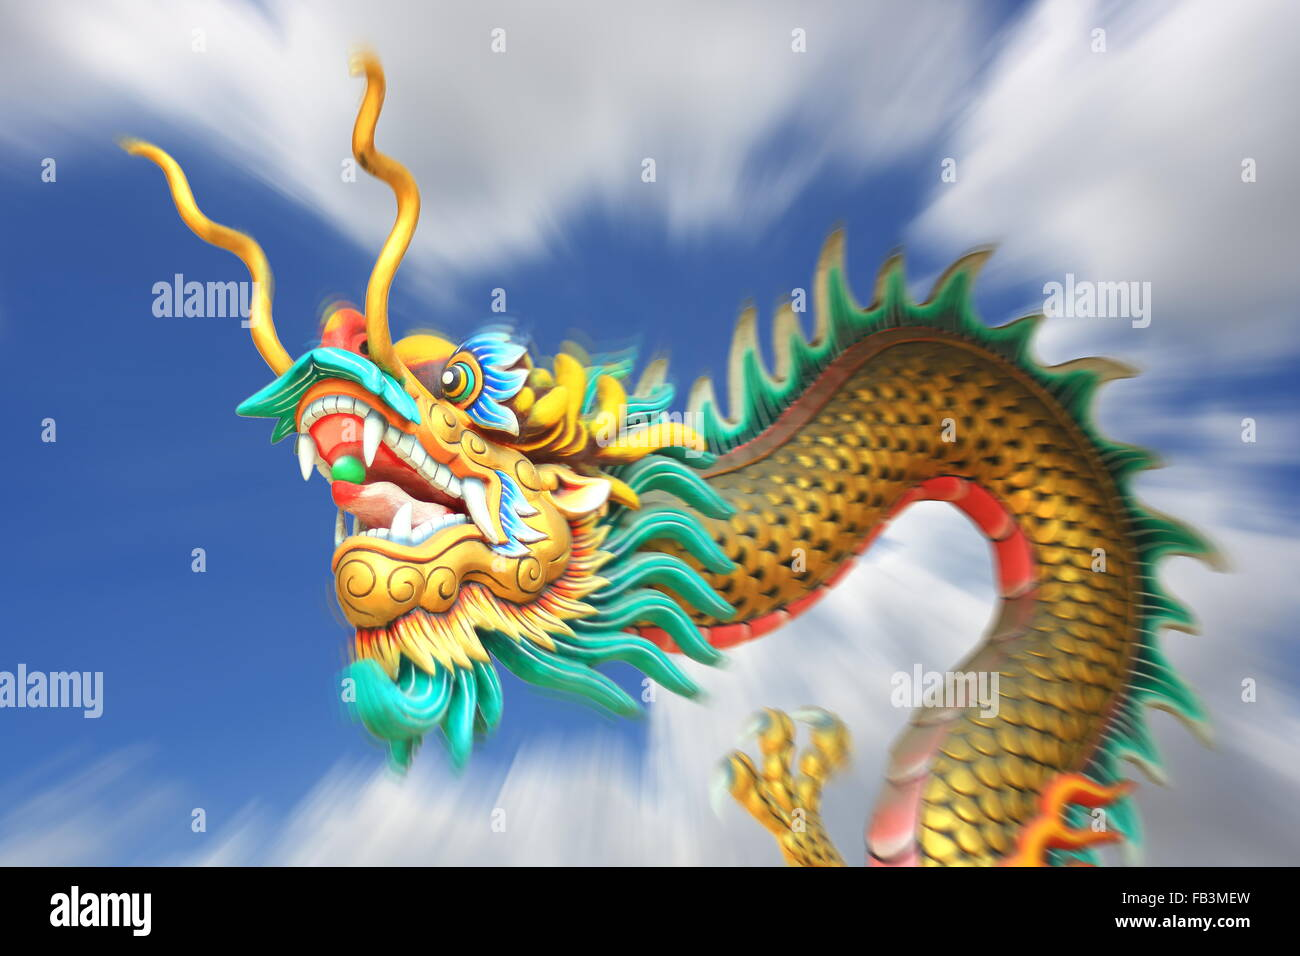 conceptual art : zoom blurring effect of china dragon statue flying in the sky. - Stock Image